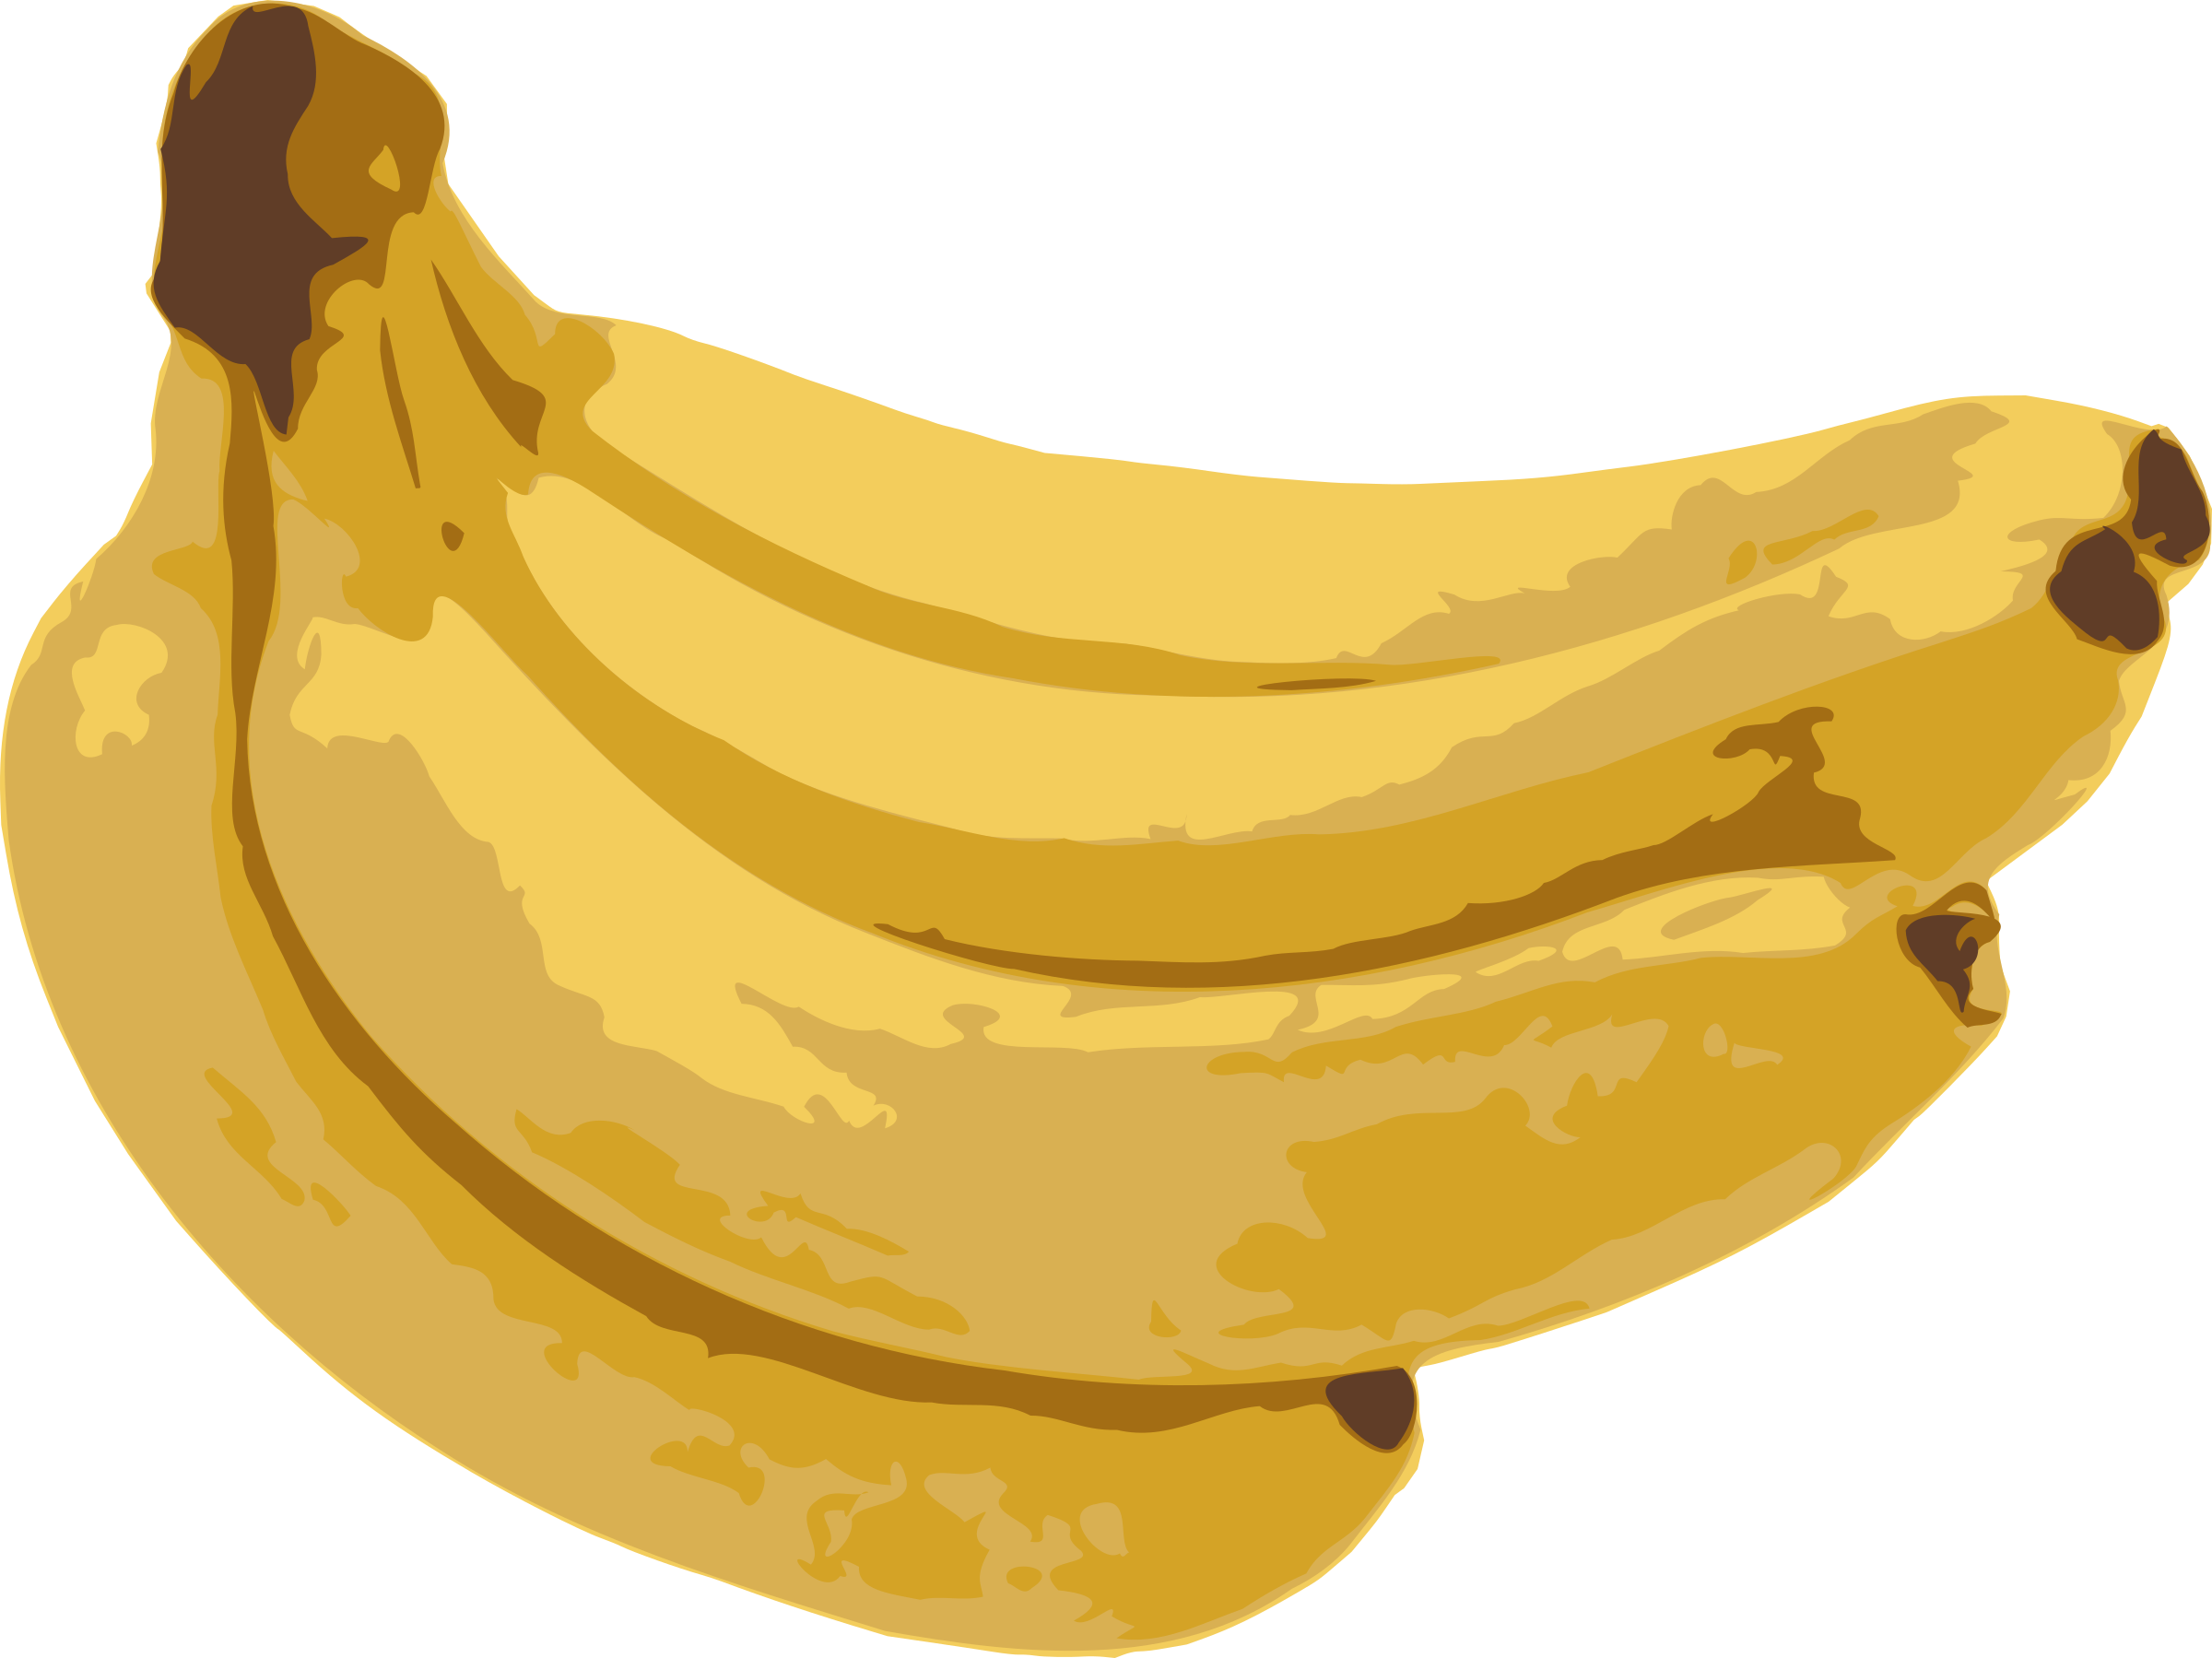 Bananas by arking